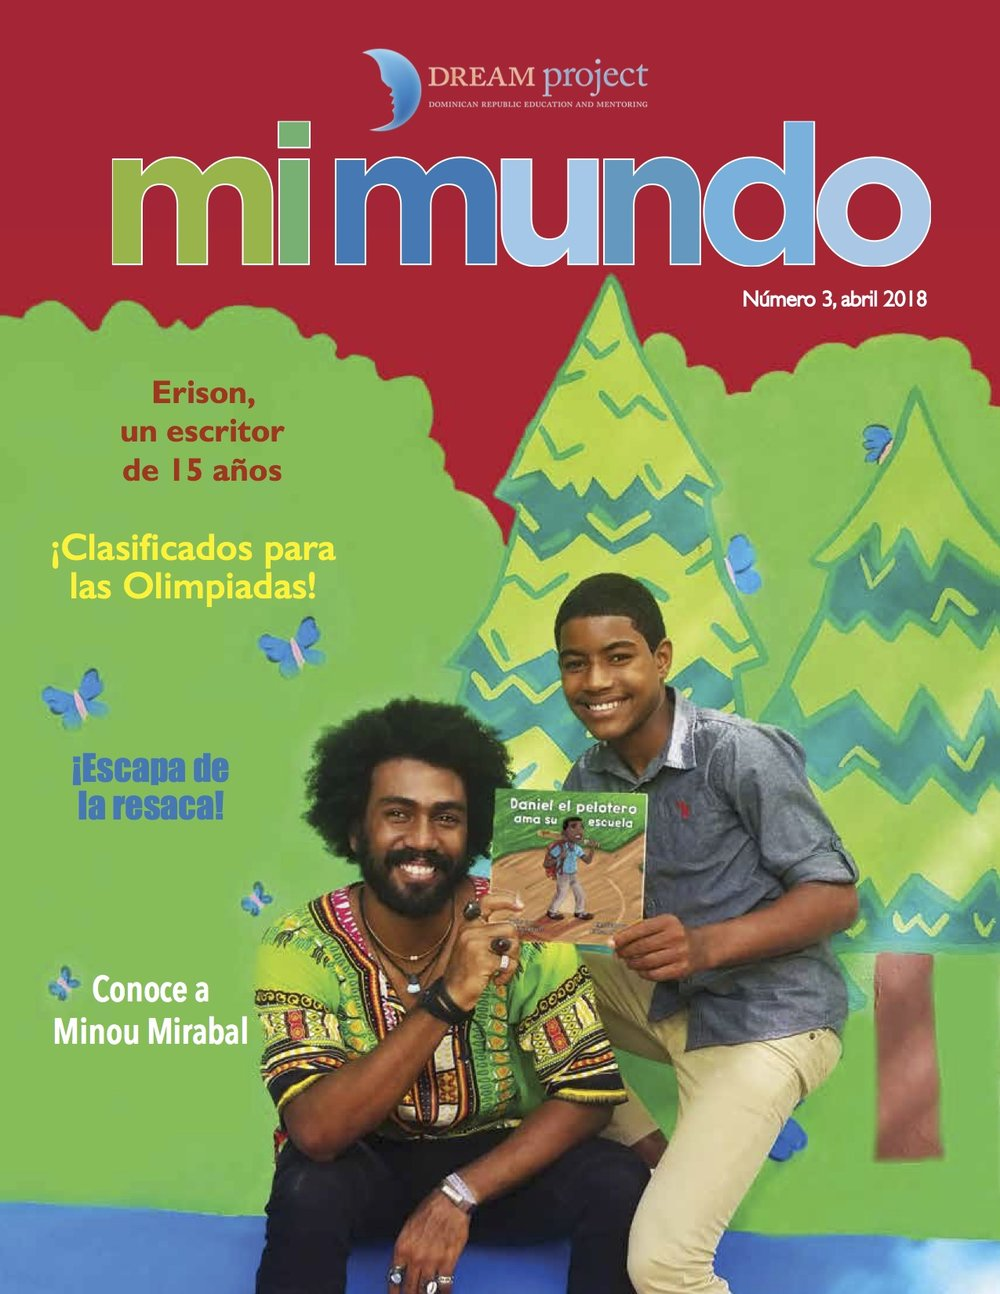 MI MUNDO 3 LOW RES FINAL (dragged).jpg